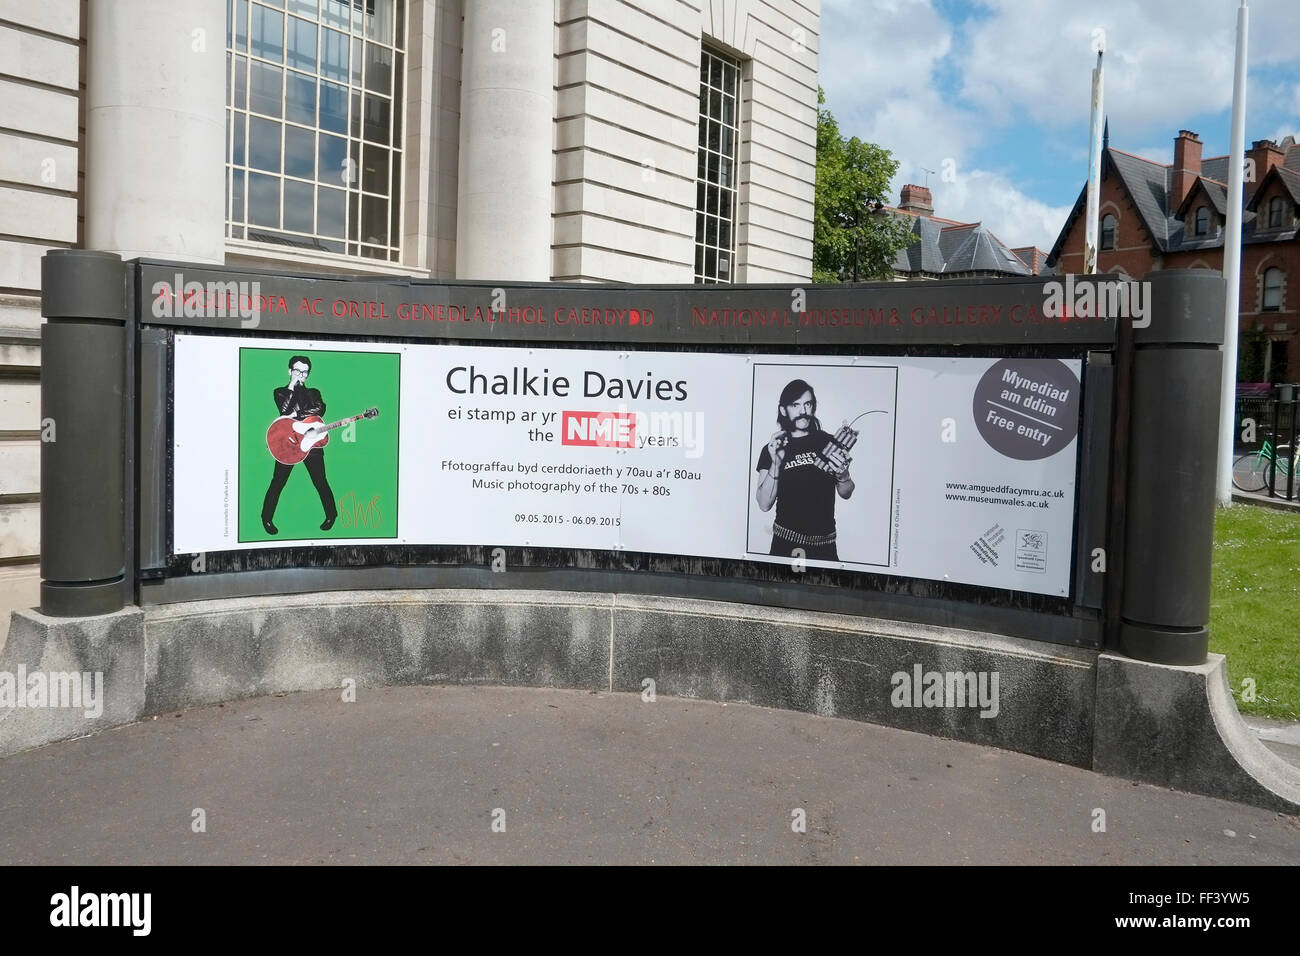 Chalkie Davies Poster number 3531 Stock Photo